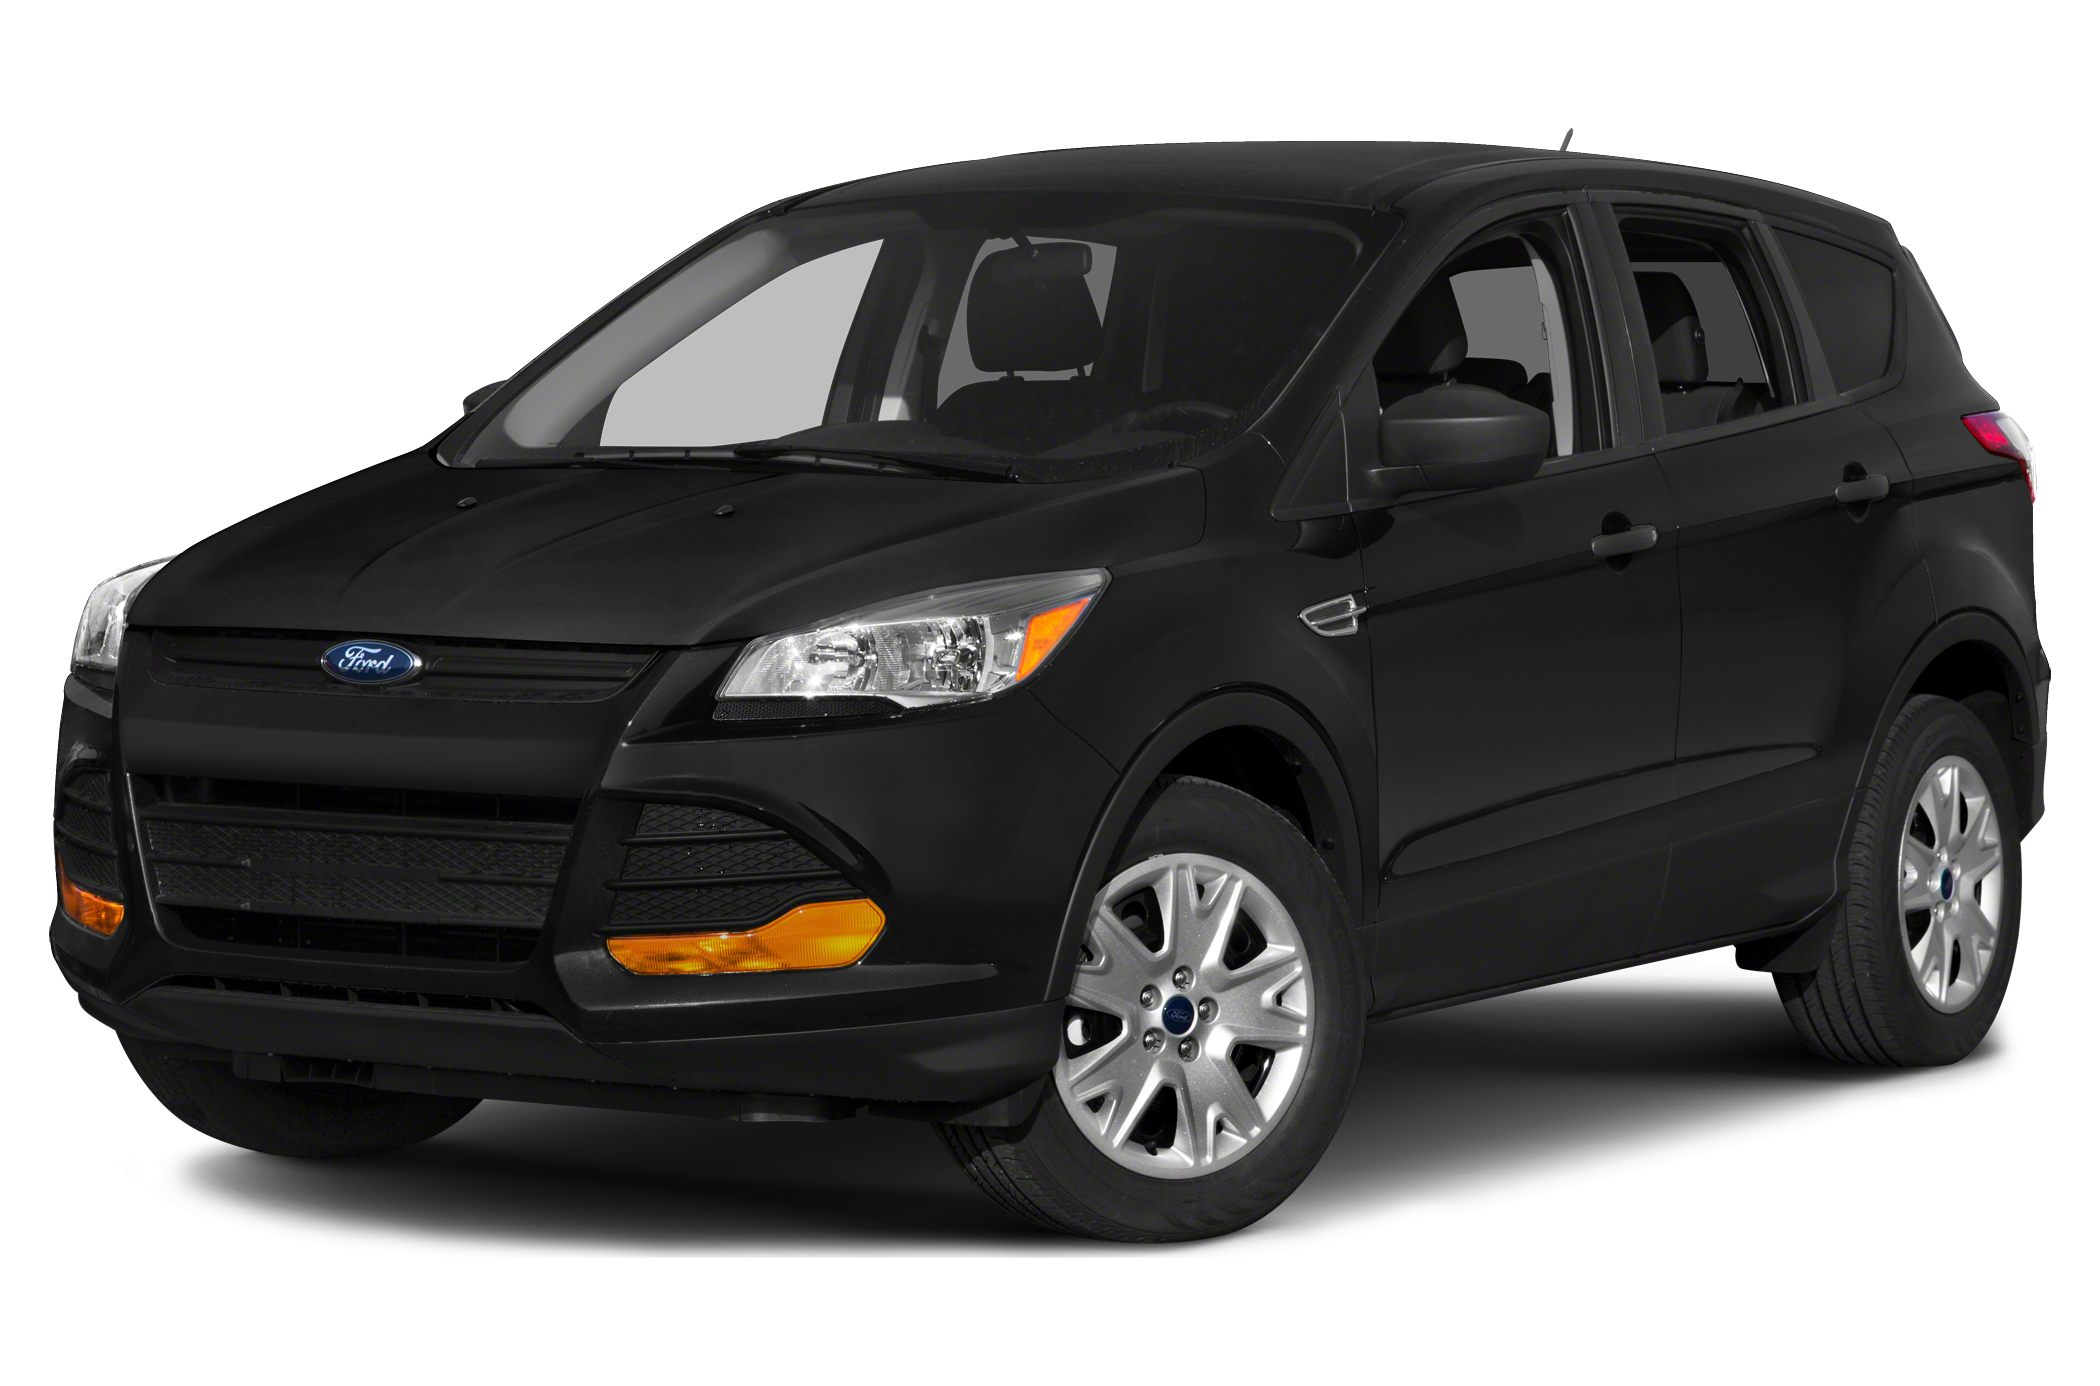 2015 Ford Escape SE SUV for sale in Paducah for $25,755 with 7 miles.